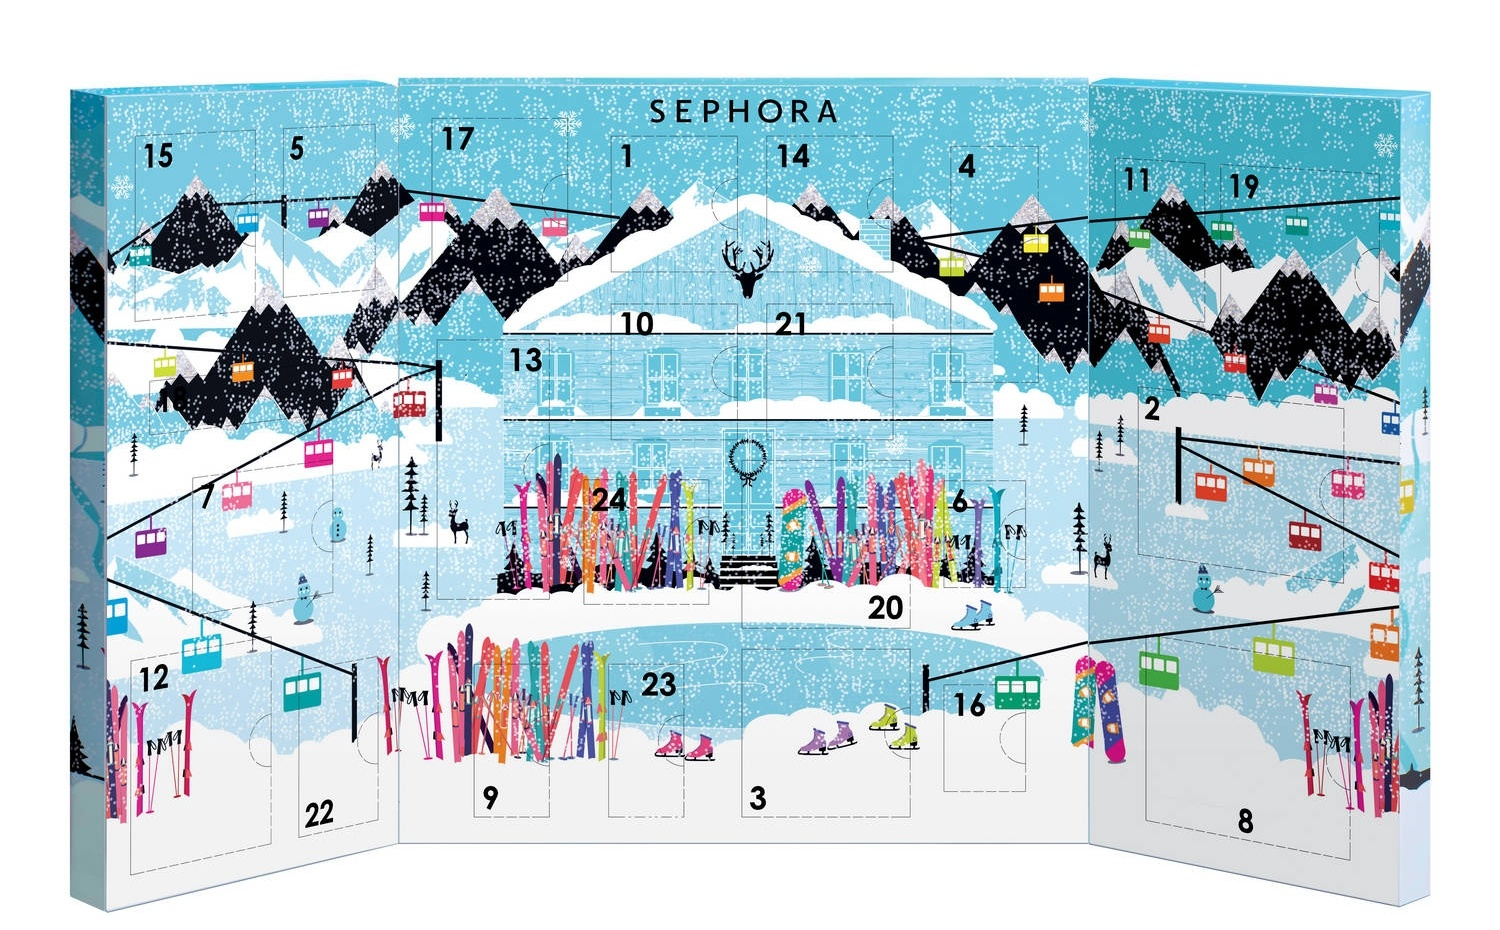 calendrier avent sephora cosmetique beaute noel 2015 idee. Black Bedroom Furniture Sets. Home Design Ideas